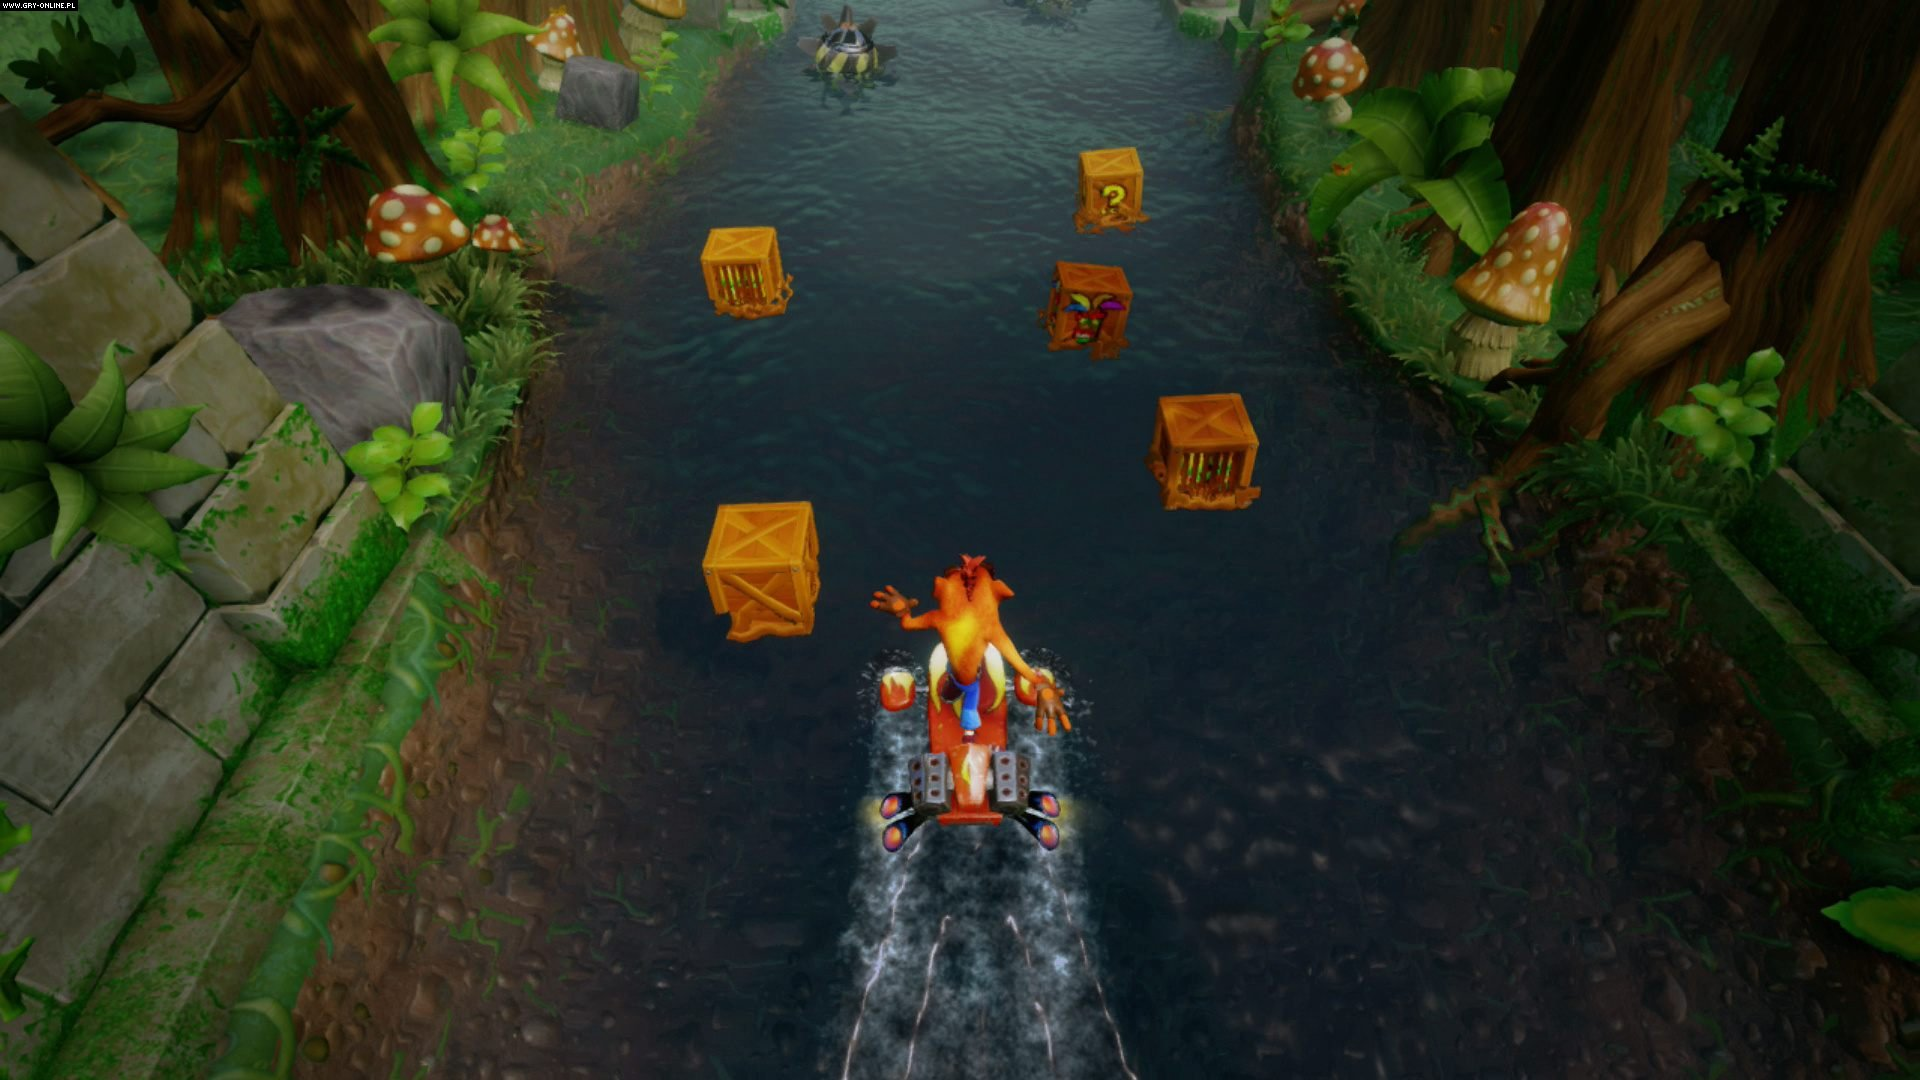 Crash Bandicoot N. Sane Trilogy PC, PS4, XONE, Switch Gry Screen 13/115, Vicarious Visions, Activision Blizzard